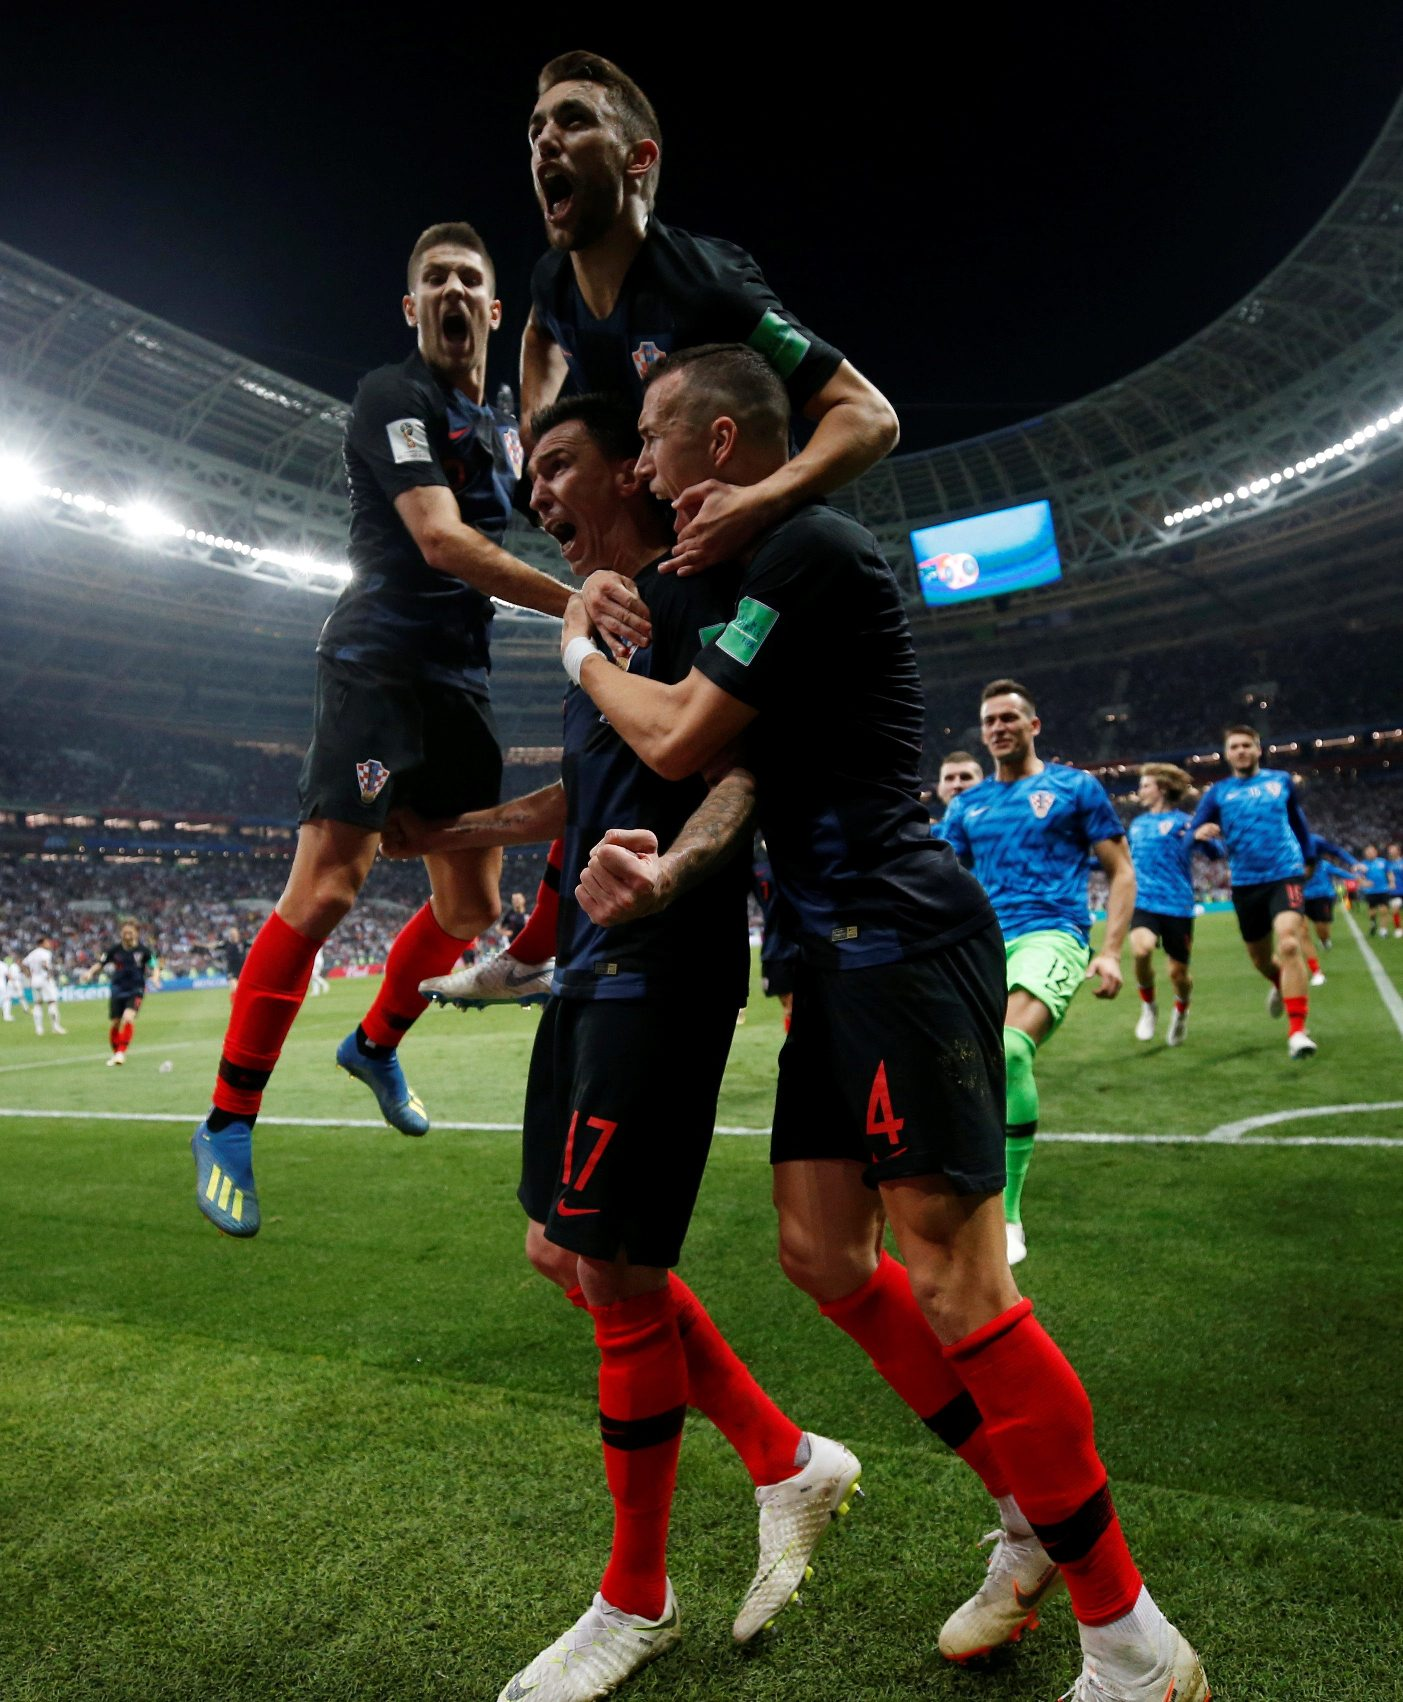 2018-07-11T210441Z_1486990409_RC1A5F5A9DD0_RTRMADP_3_SOCCER-WORLDCUP-CRO-ENG